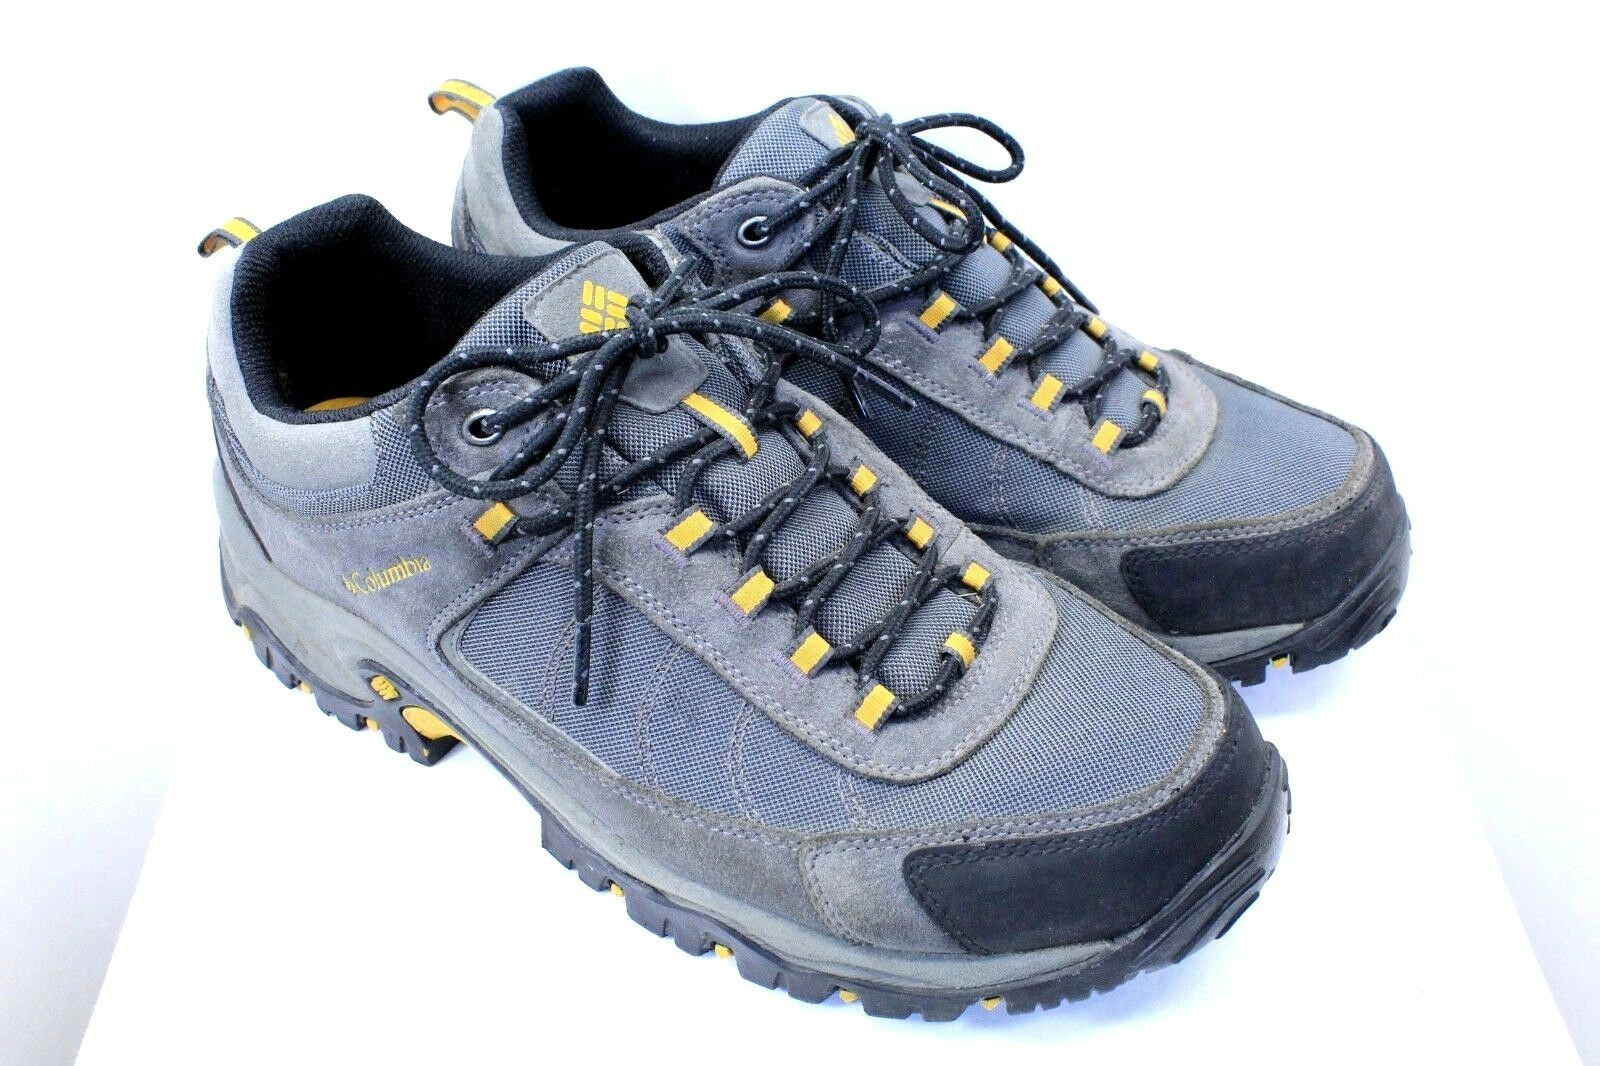 bb4749b2b5c COLUMBIA brand brand brand mens hiking shoes size 11 leather and fabric  well made WD6 435c55 ...